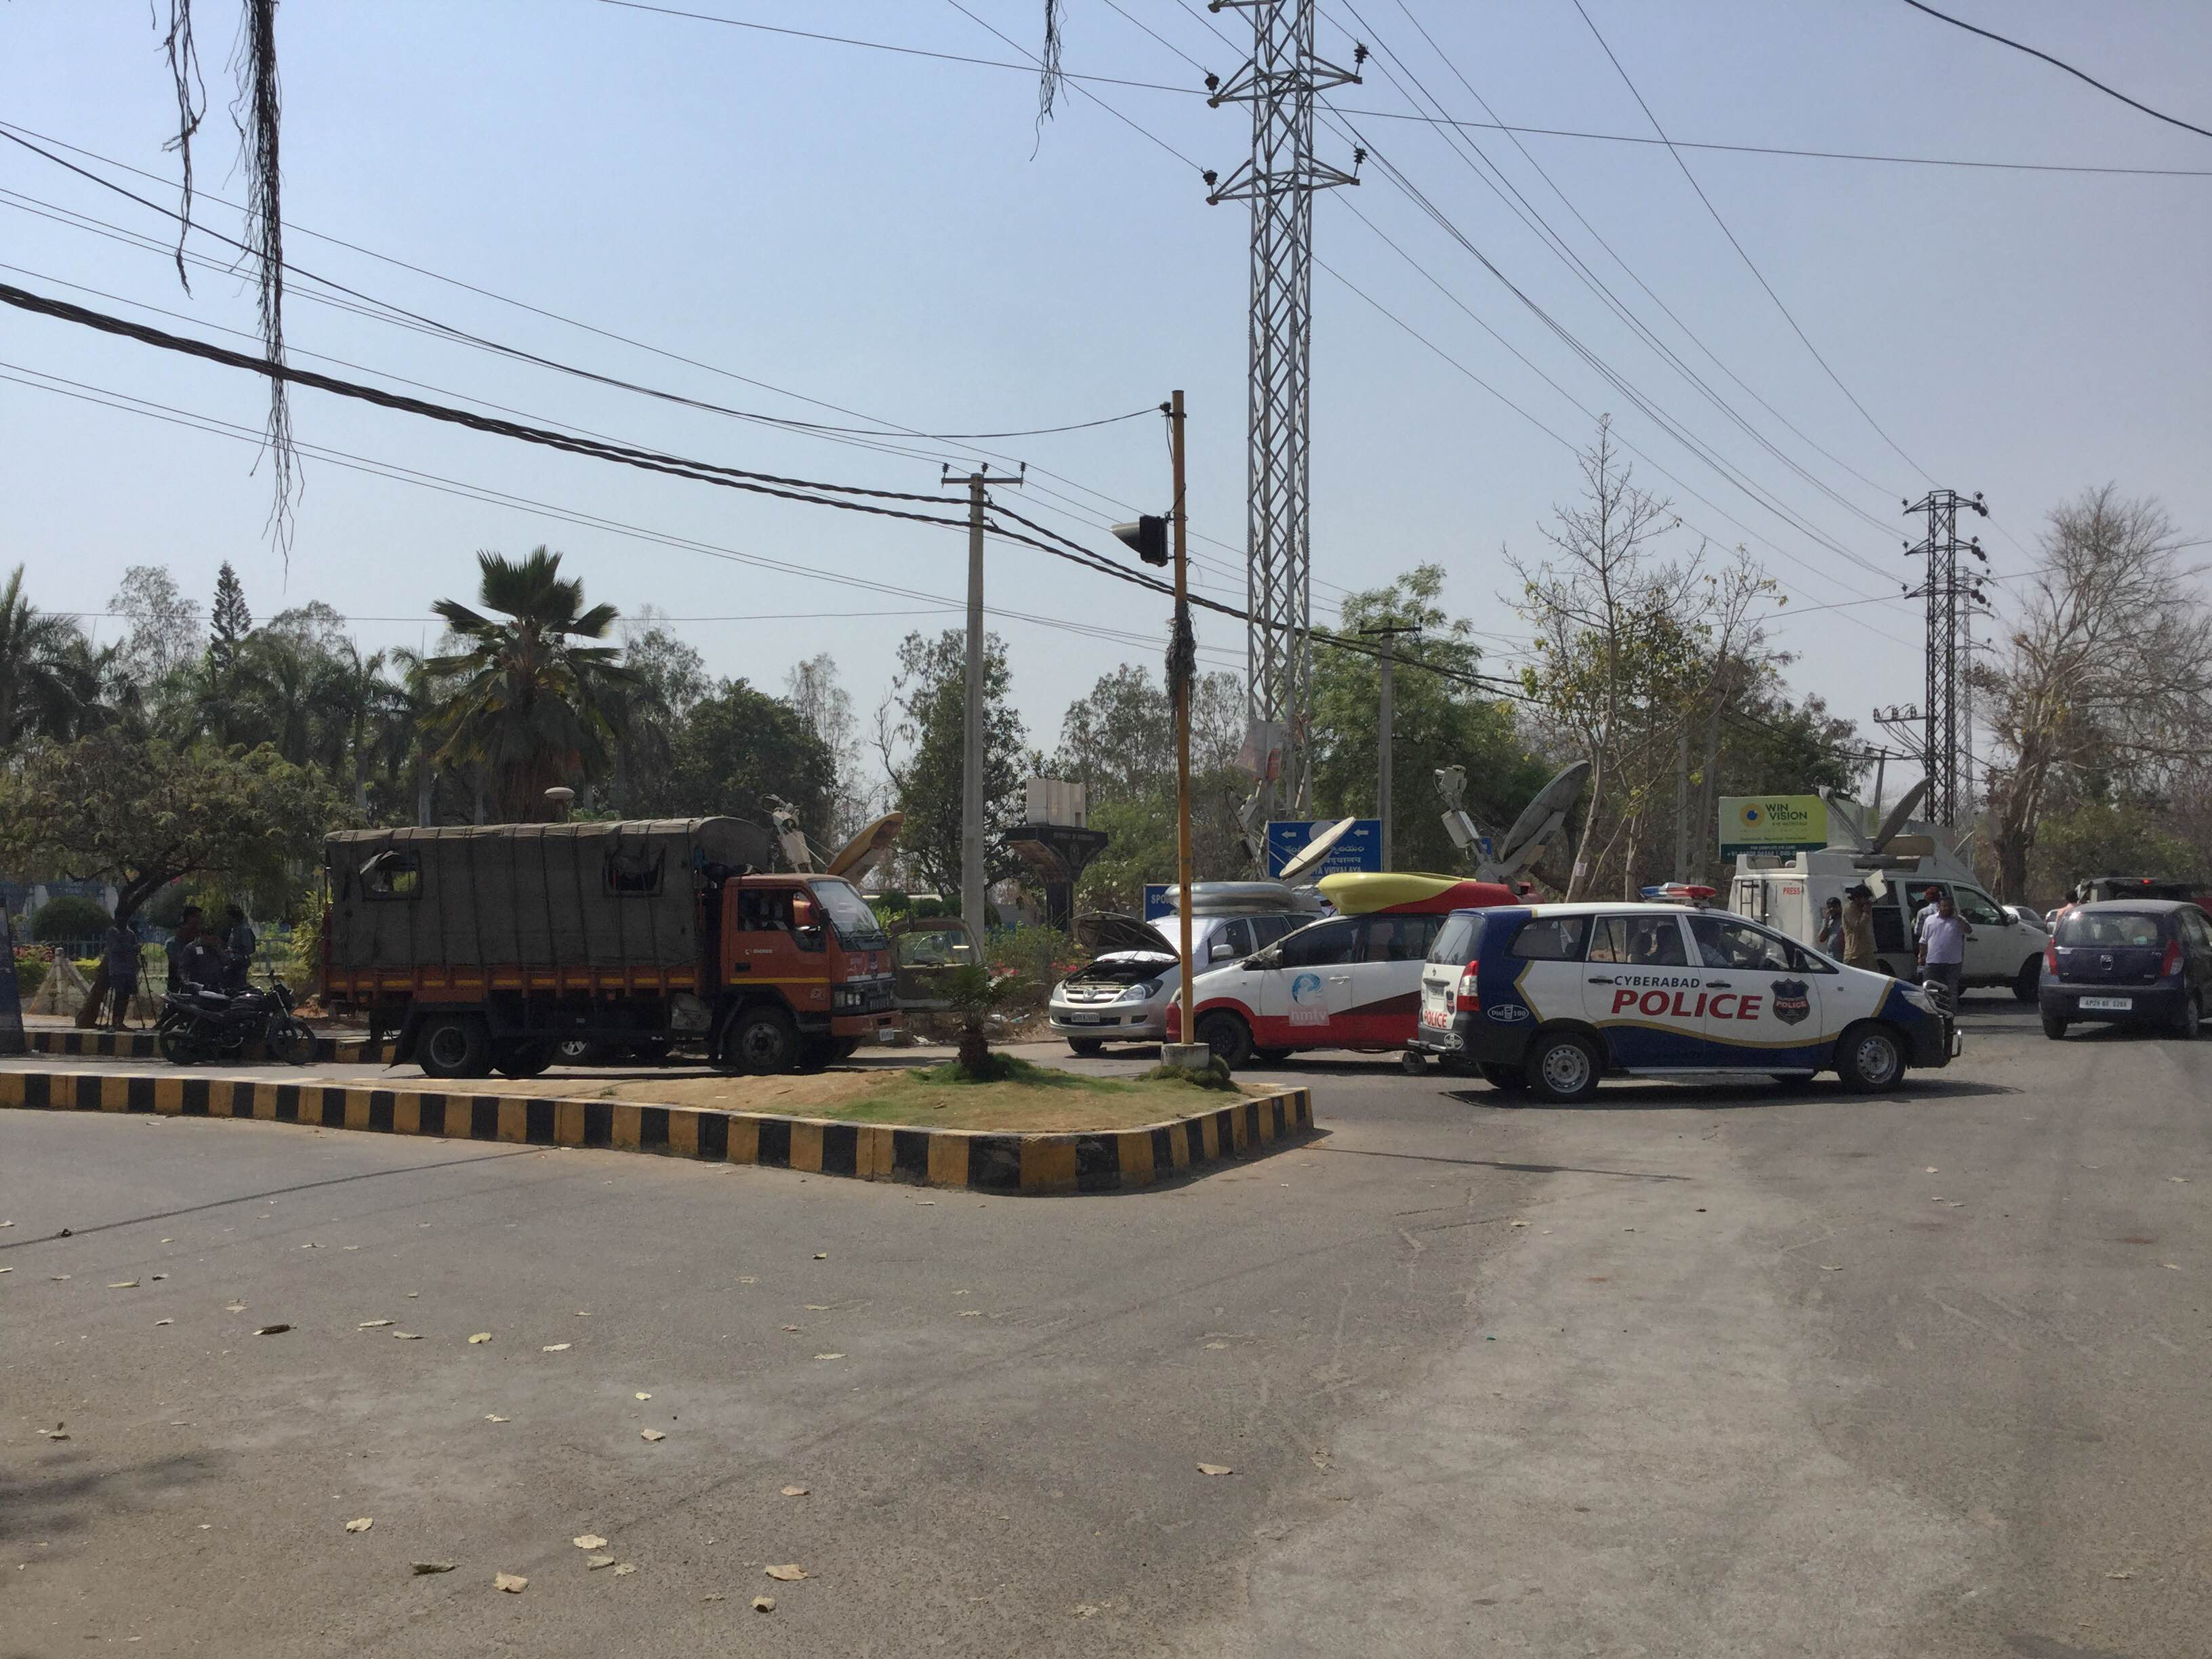 Police presence outside campus. Photo: Ayesha Minhaz